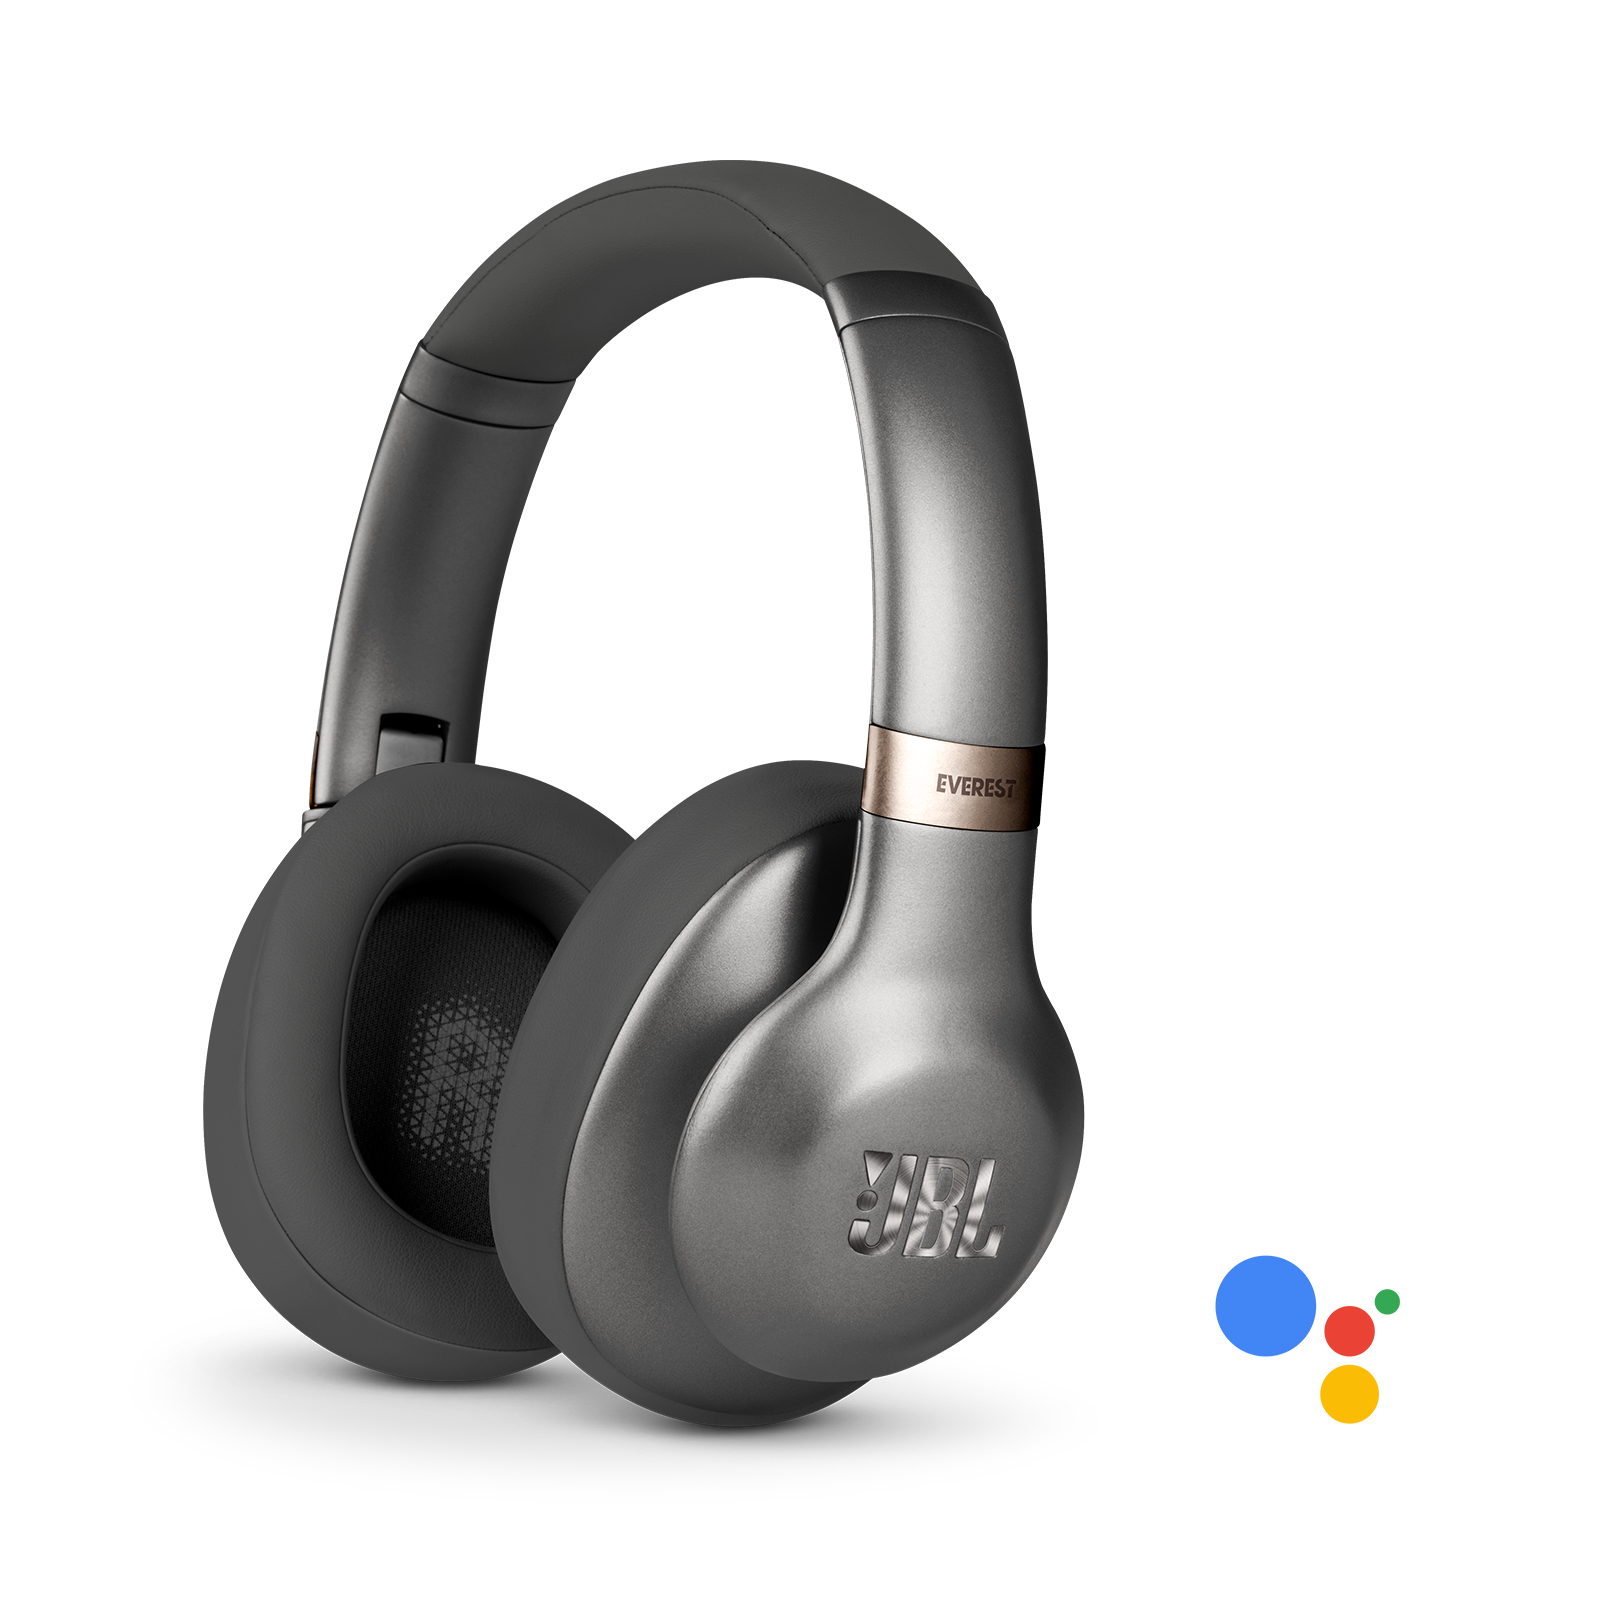 JBL Everest 710GA Wireless Over-Ear Headphones with Voice Activation and Built-In Remote and Microphone (Gunmetal)